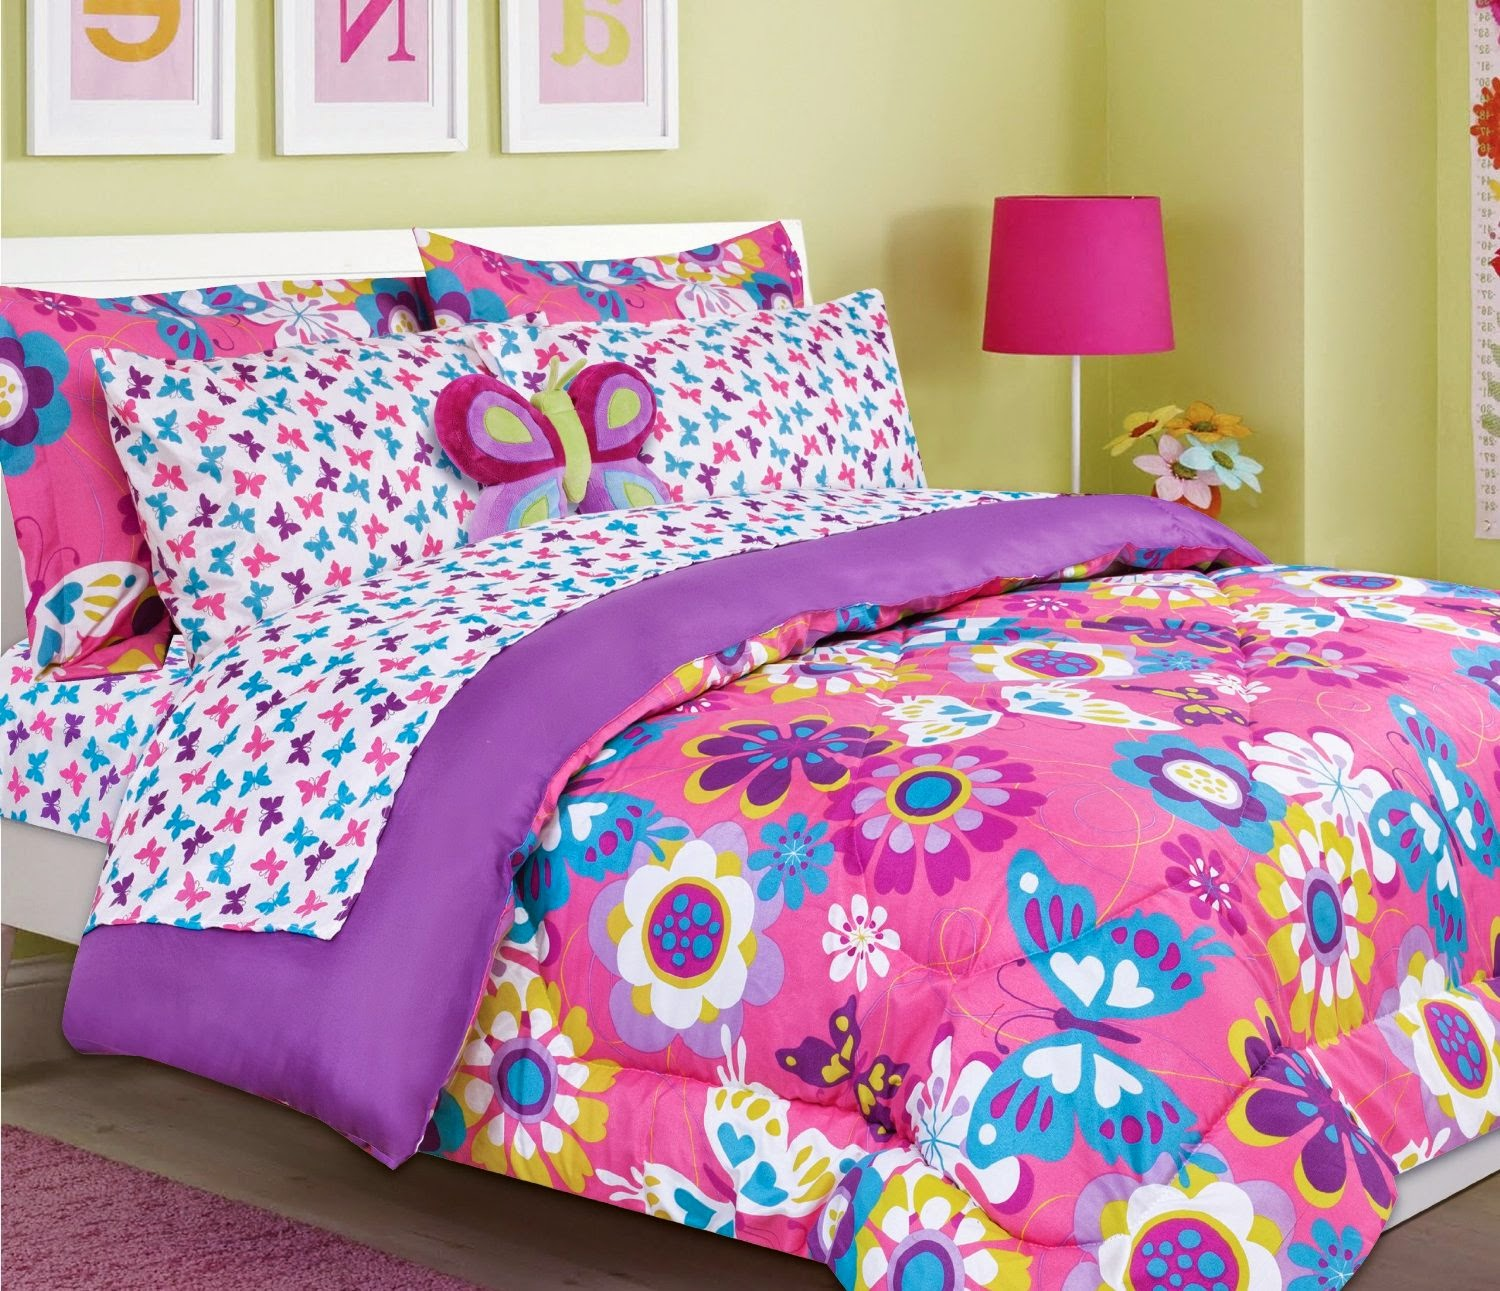 Butterfly Bedroom Themes Bedroom Decor Ideas And Designs Top Butterfly Themed